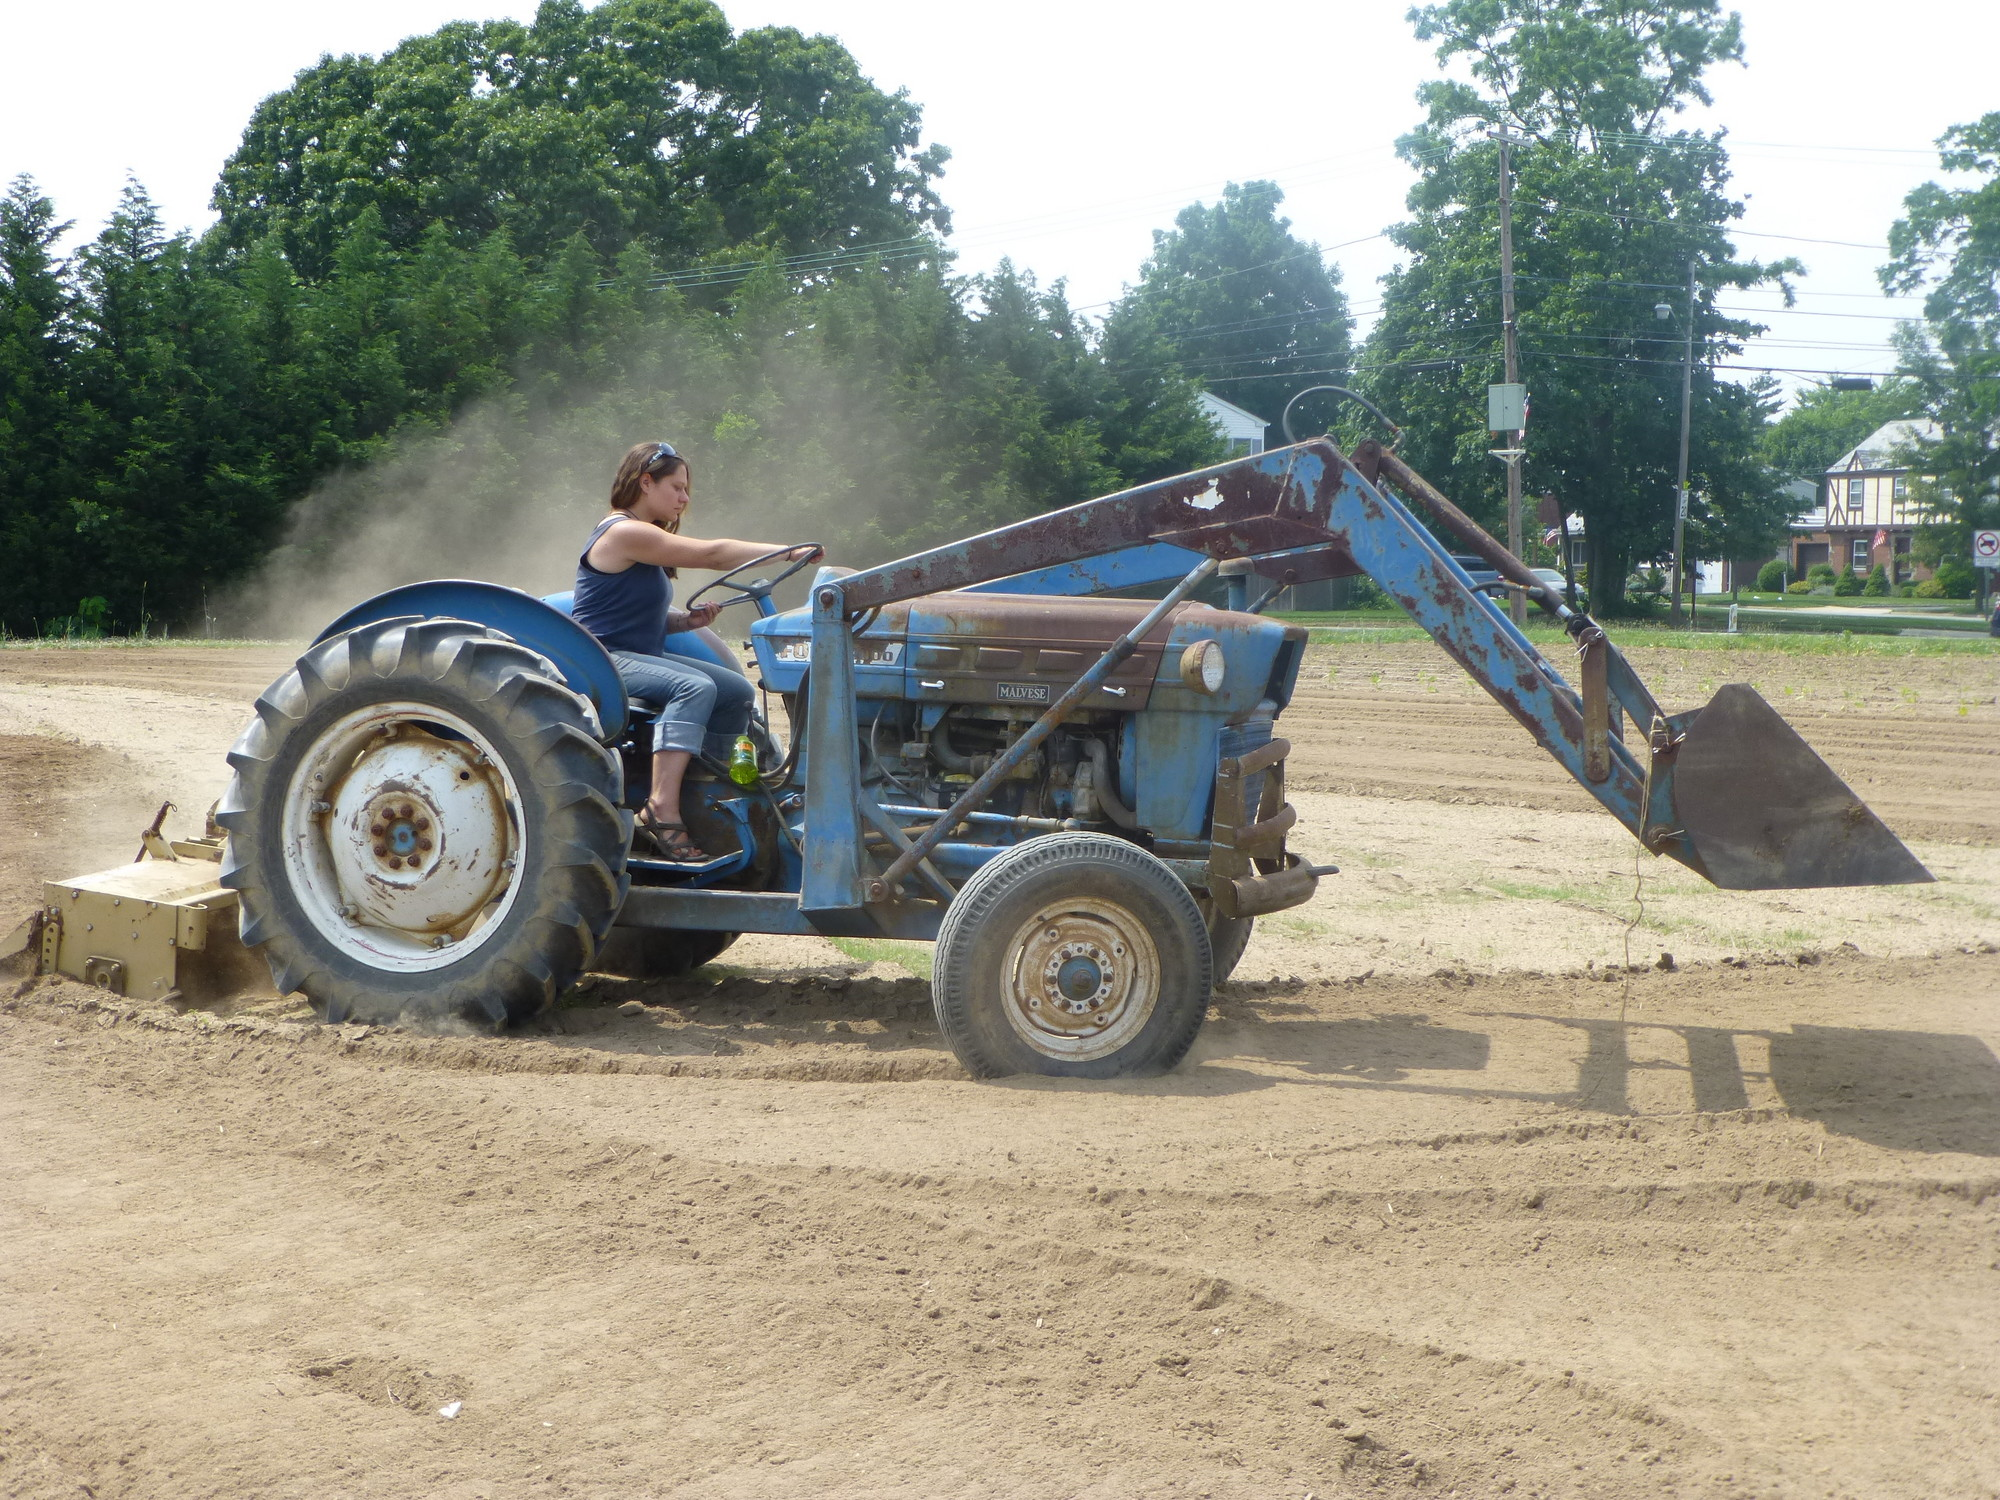 Crossroads Manager Elizabeth Schaefer tilled the fields on her tractor.